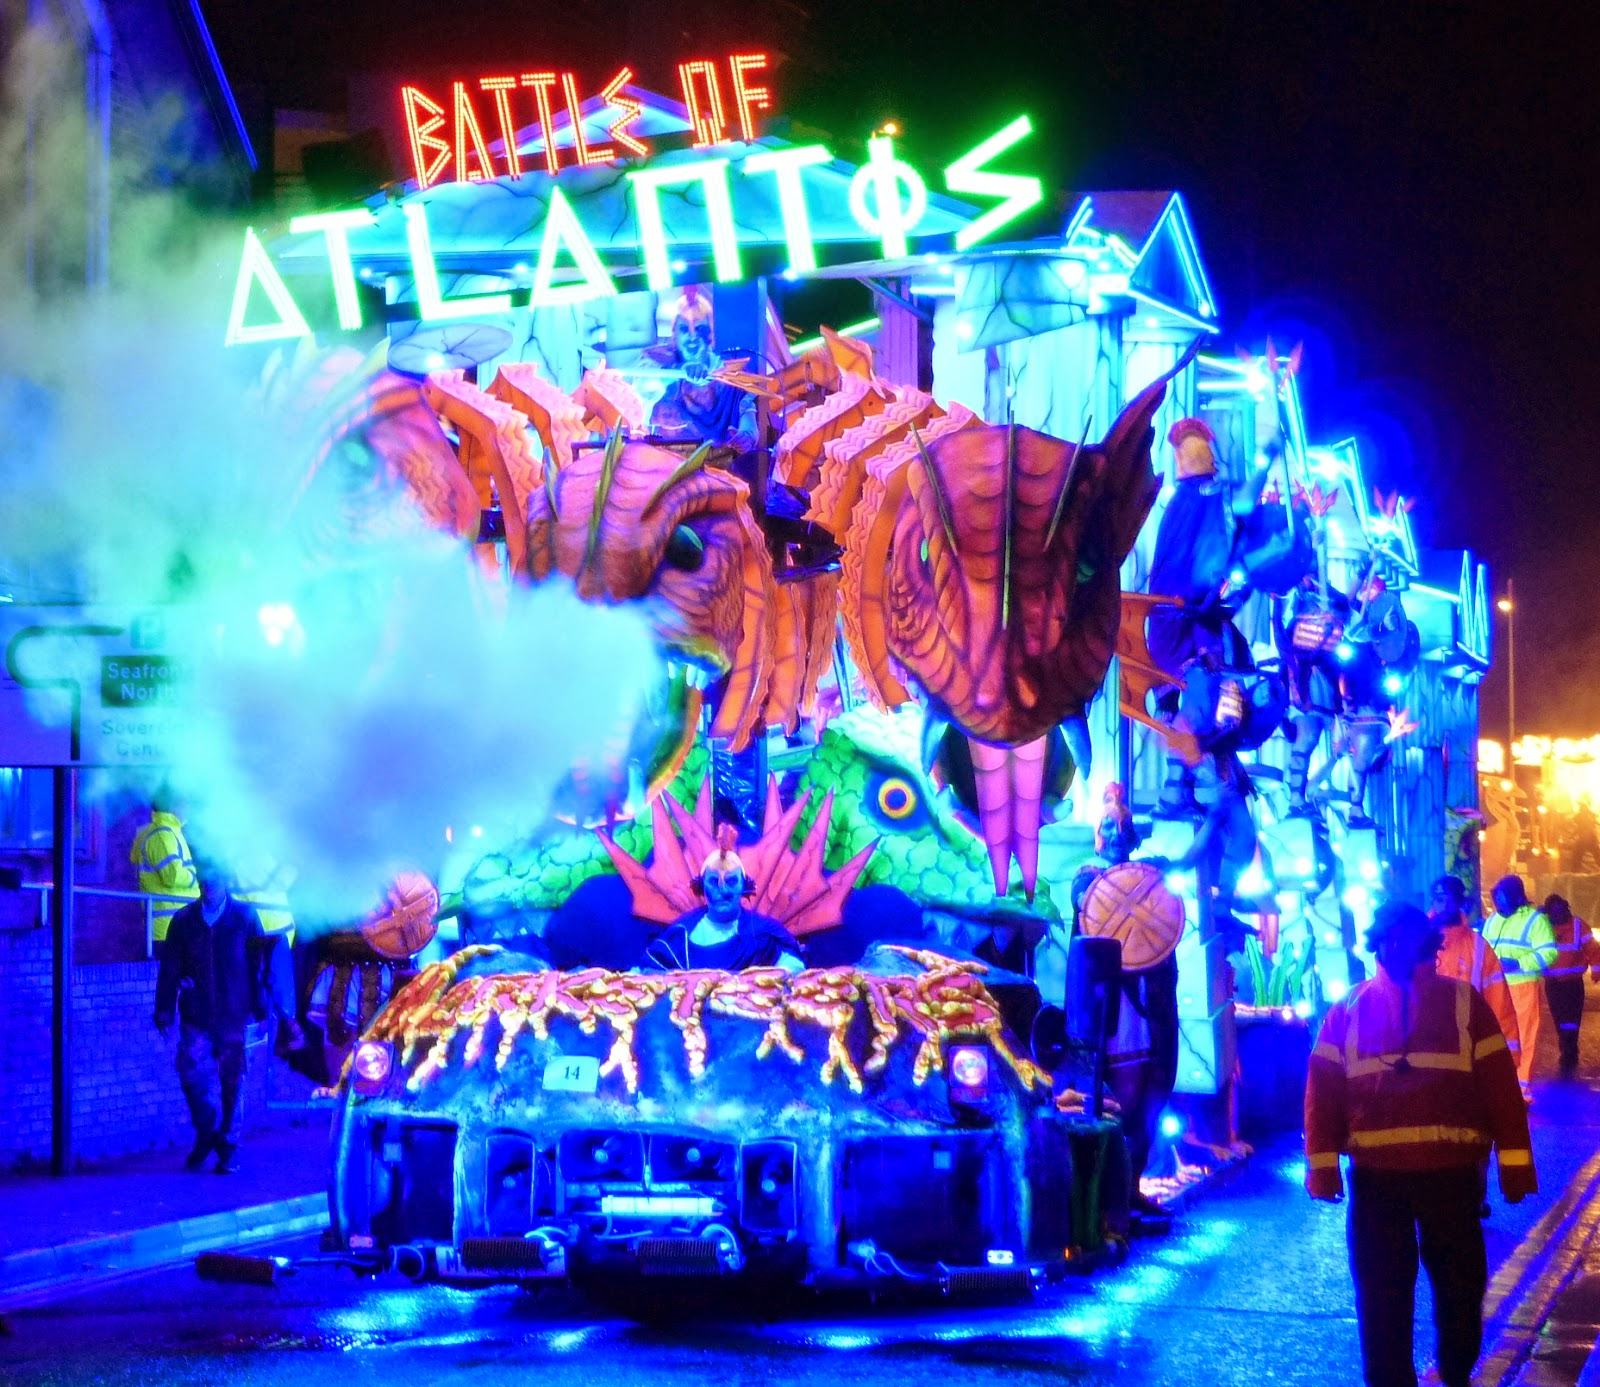 Somerset Carnival Season 2014 - Marketeers Carnival Club with 'Battle of Atlantis'